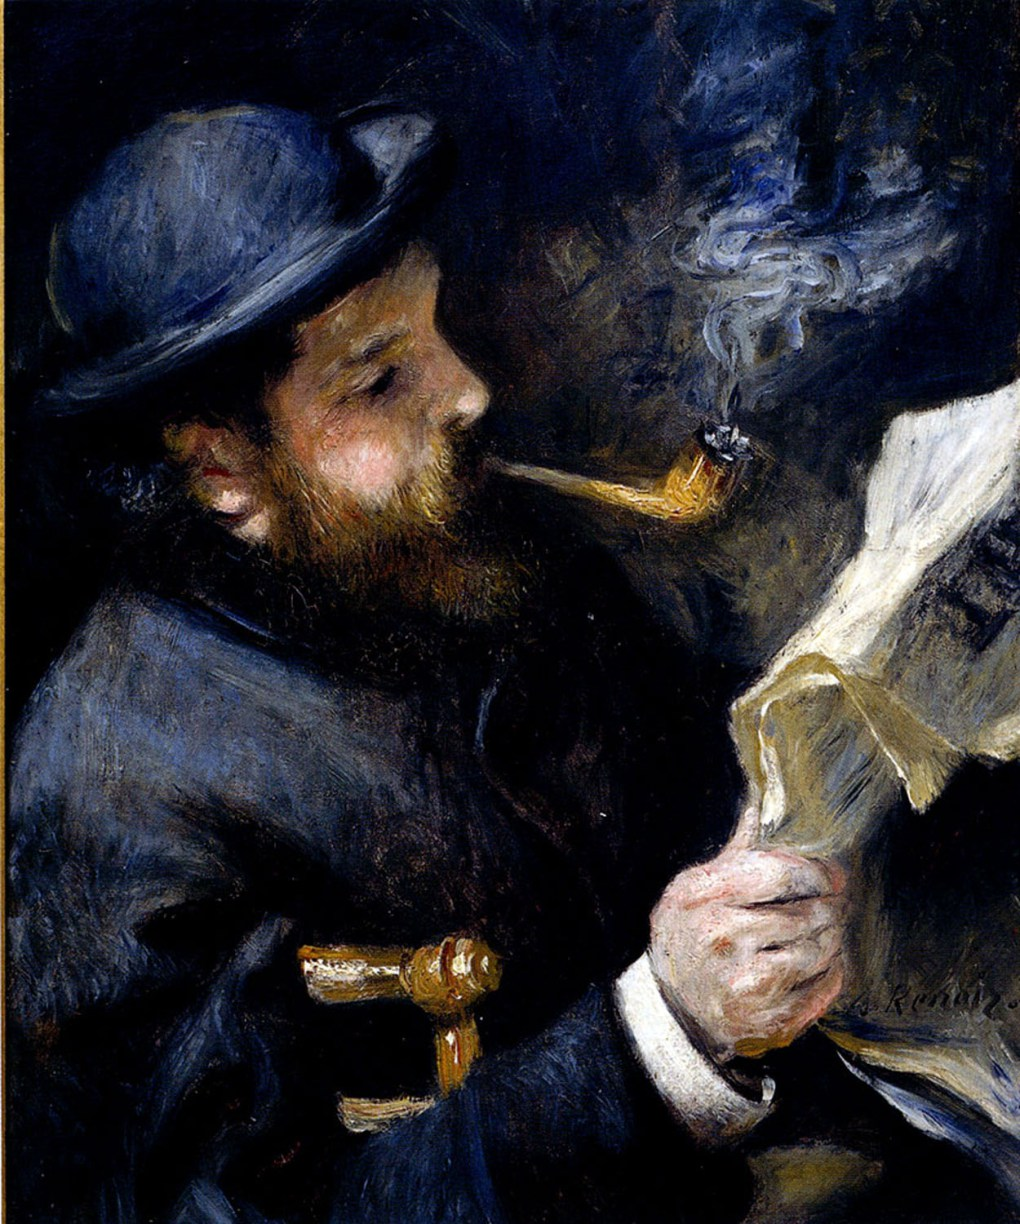 pierre_auguste_renoir_claude_monet_reading_a_newspaper